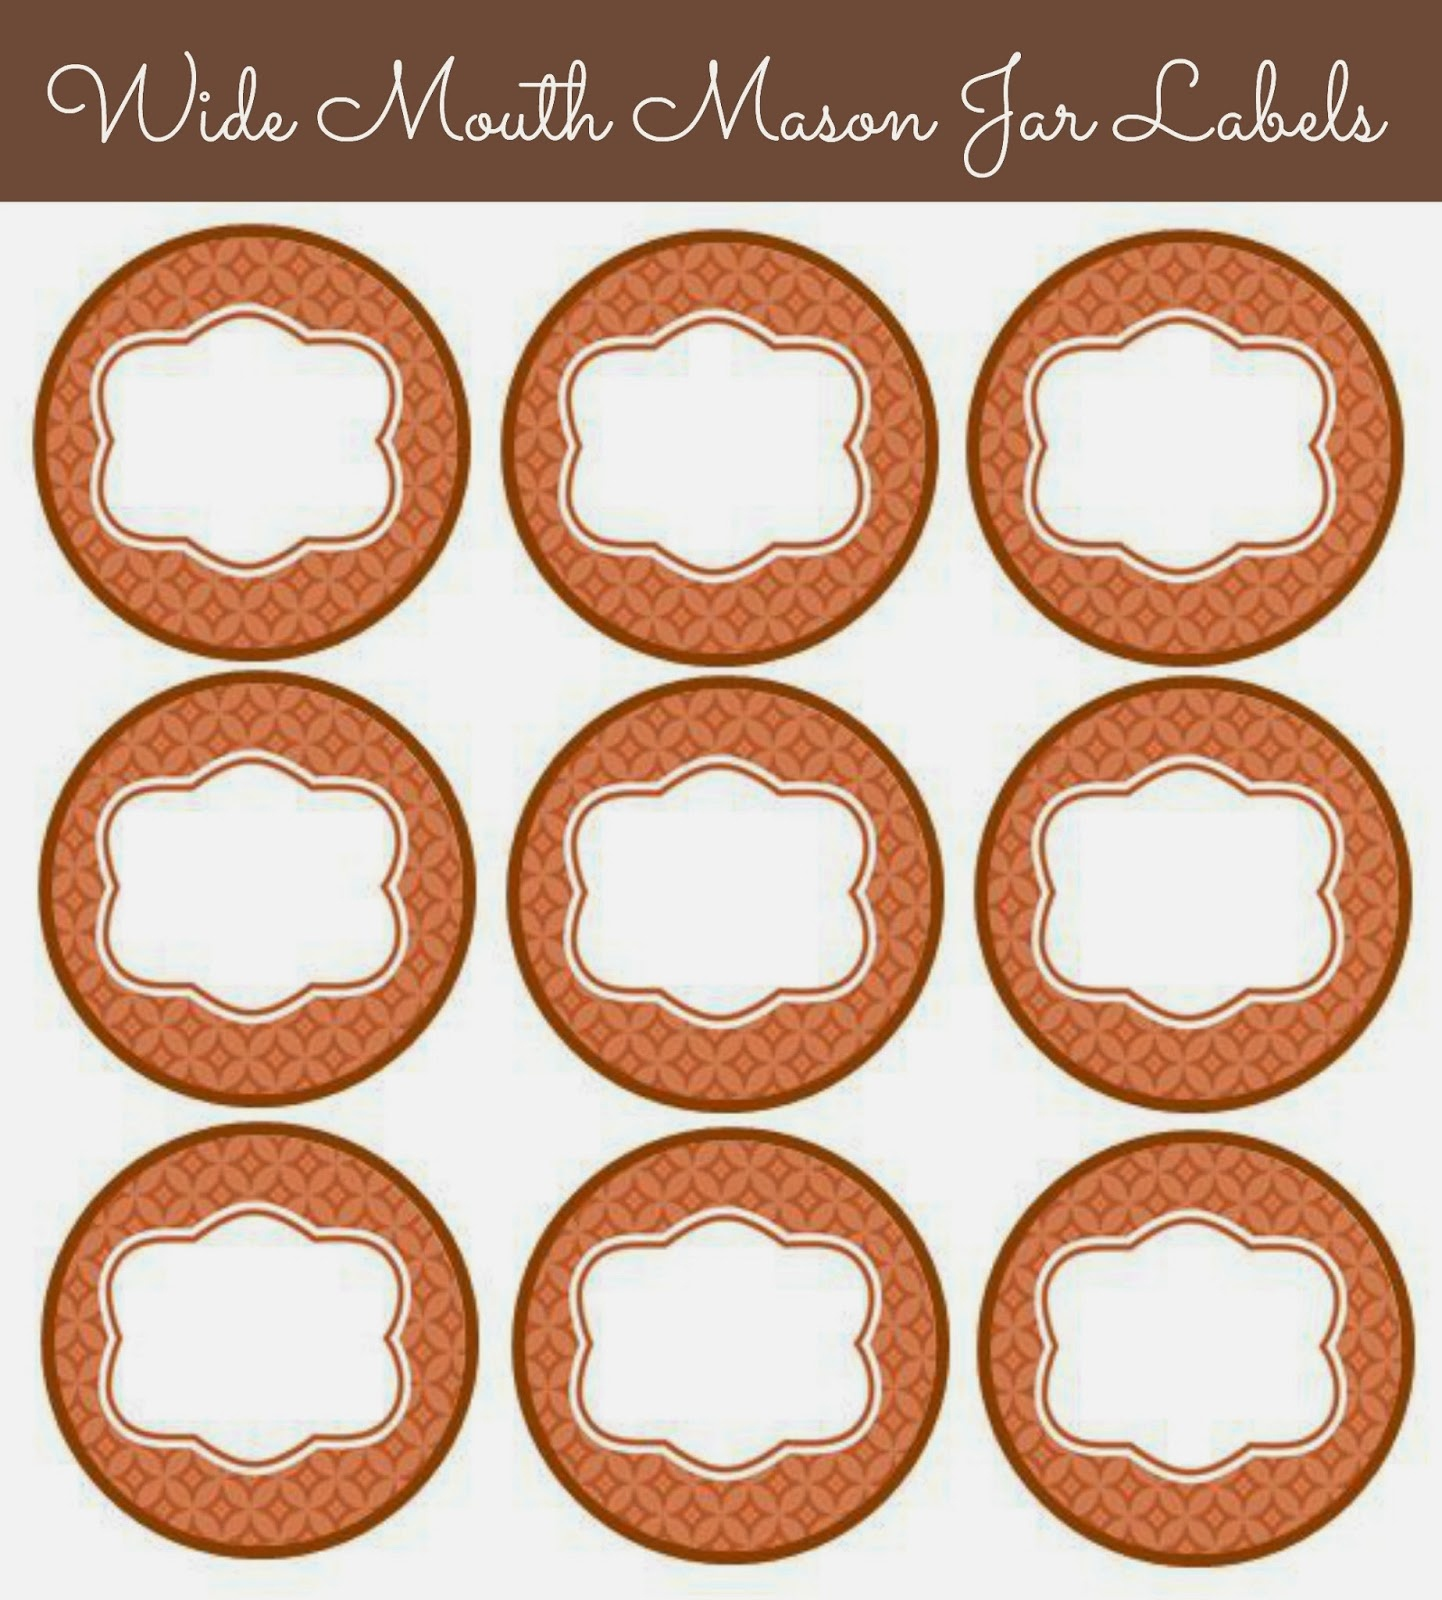 56 Cute Mason Jar Labels | Kittybabylove - Free Printable Jar Label Templates